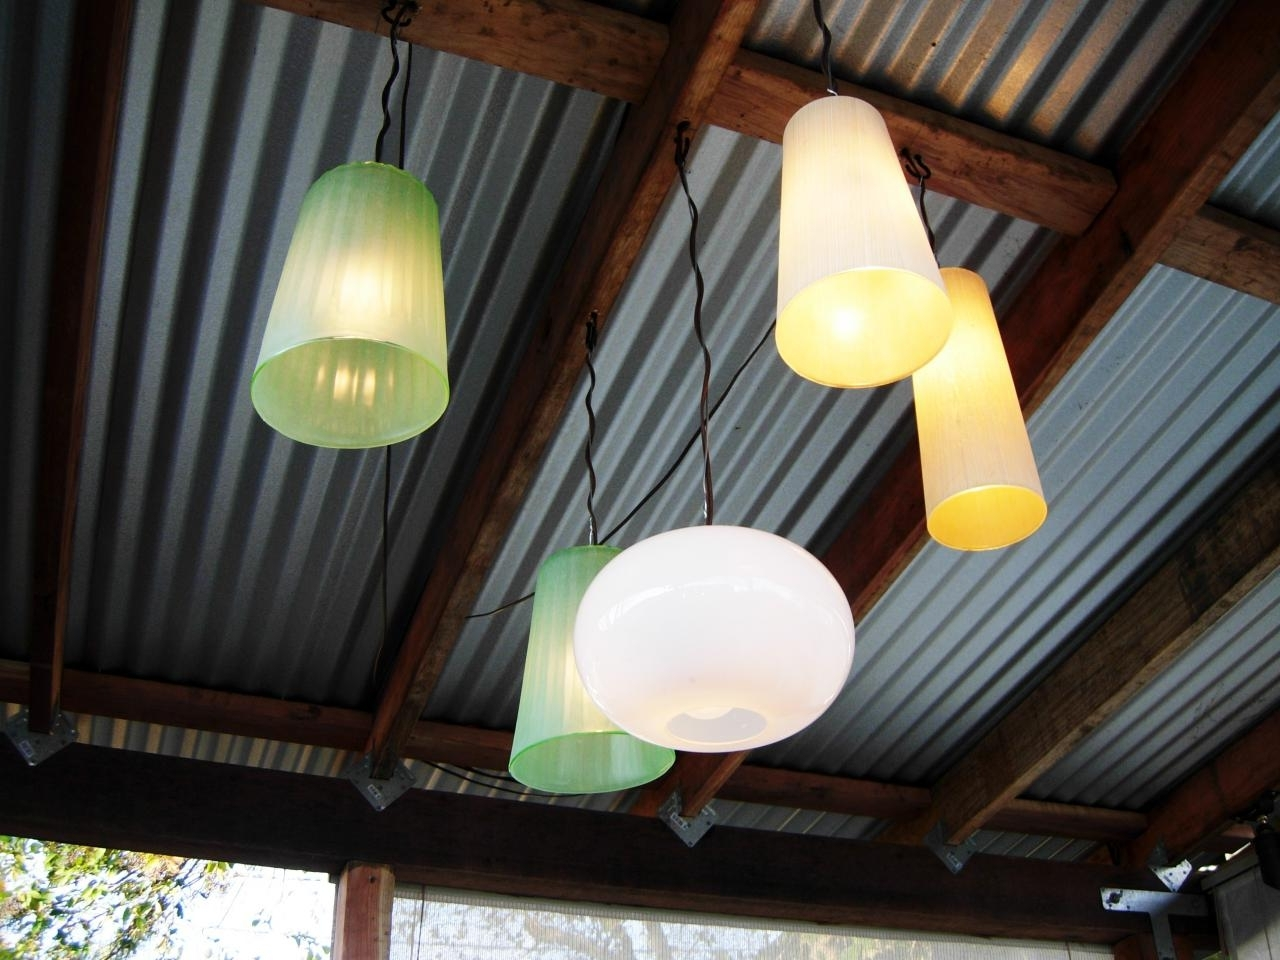 Diy With Regard To Diy Outdoor Ceiling Lights (Gallery 20 of 20)